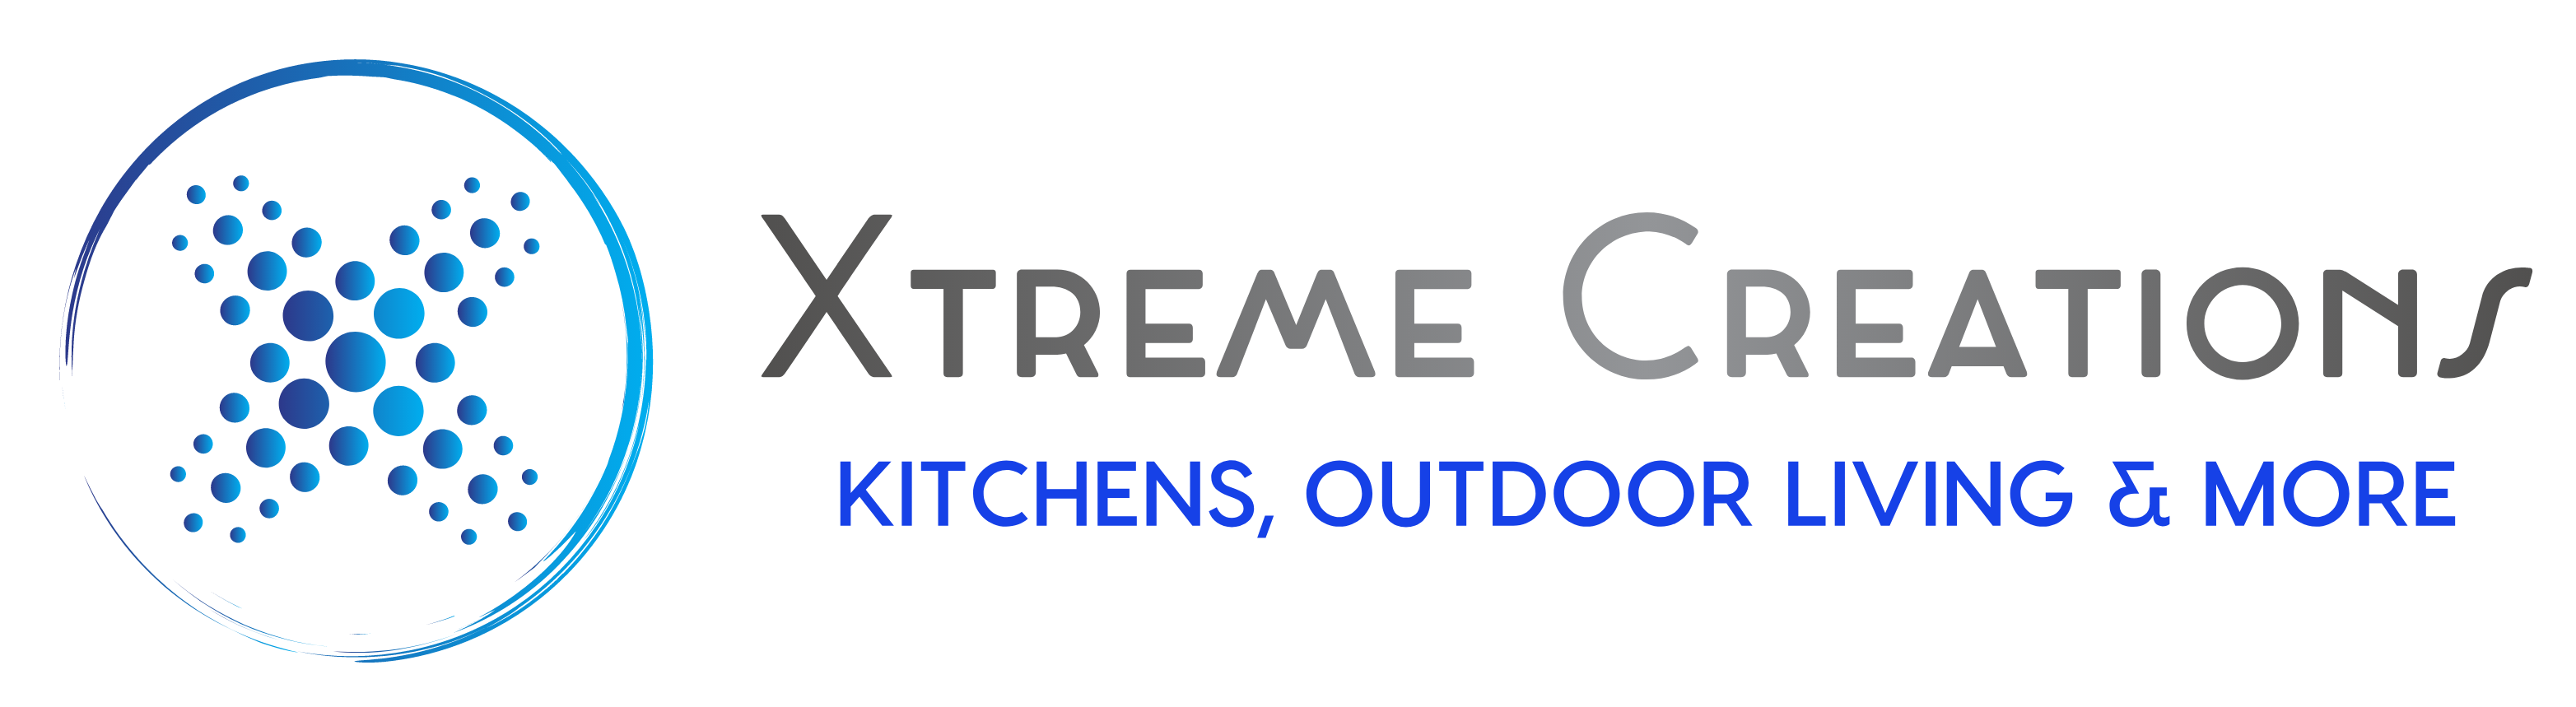 Xtreme Creations Kitchen, Outdoor Living & More